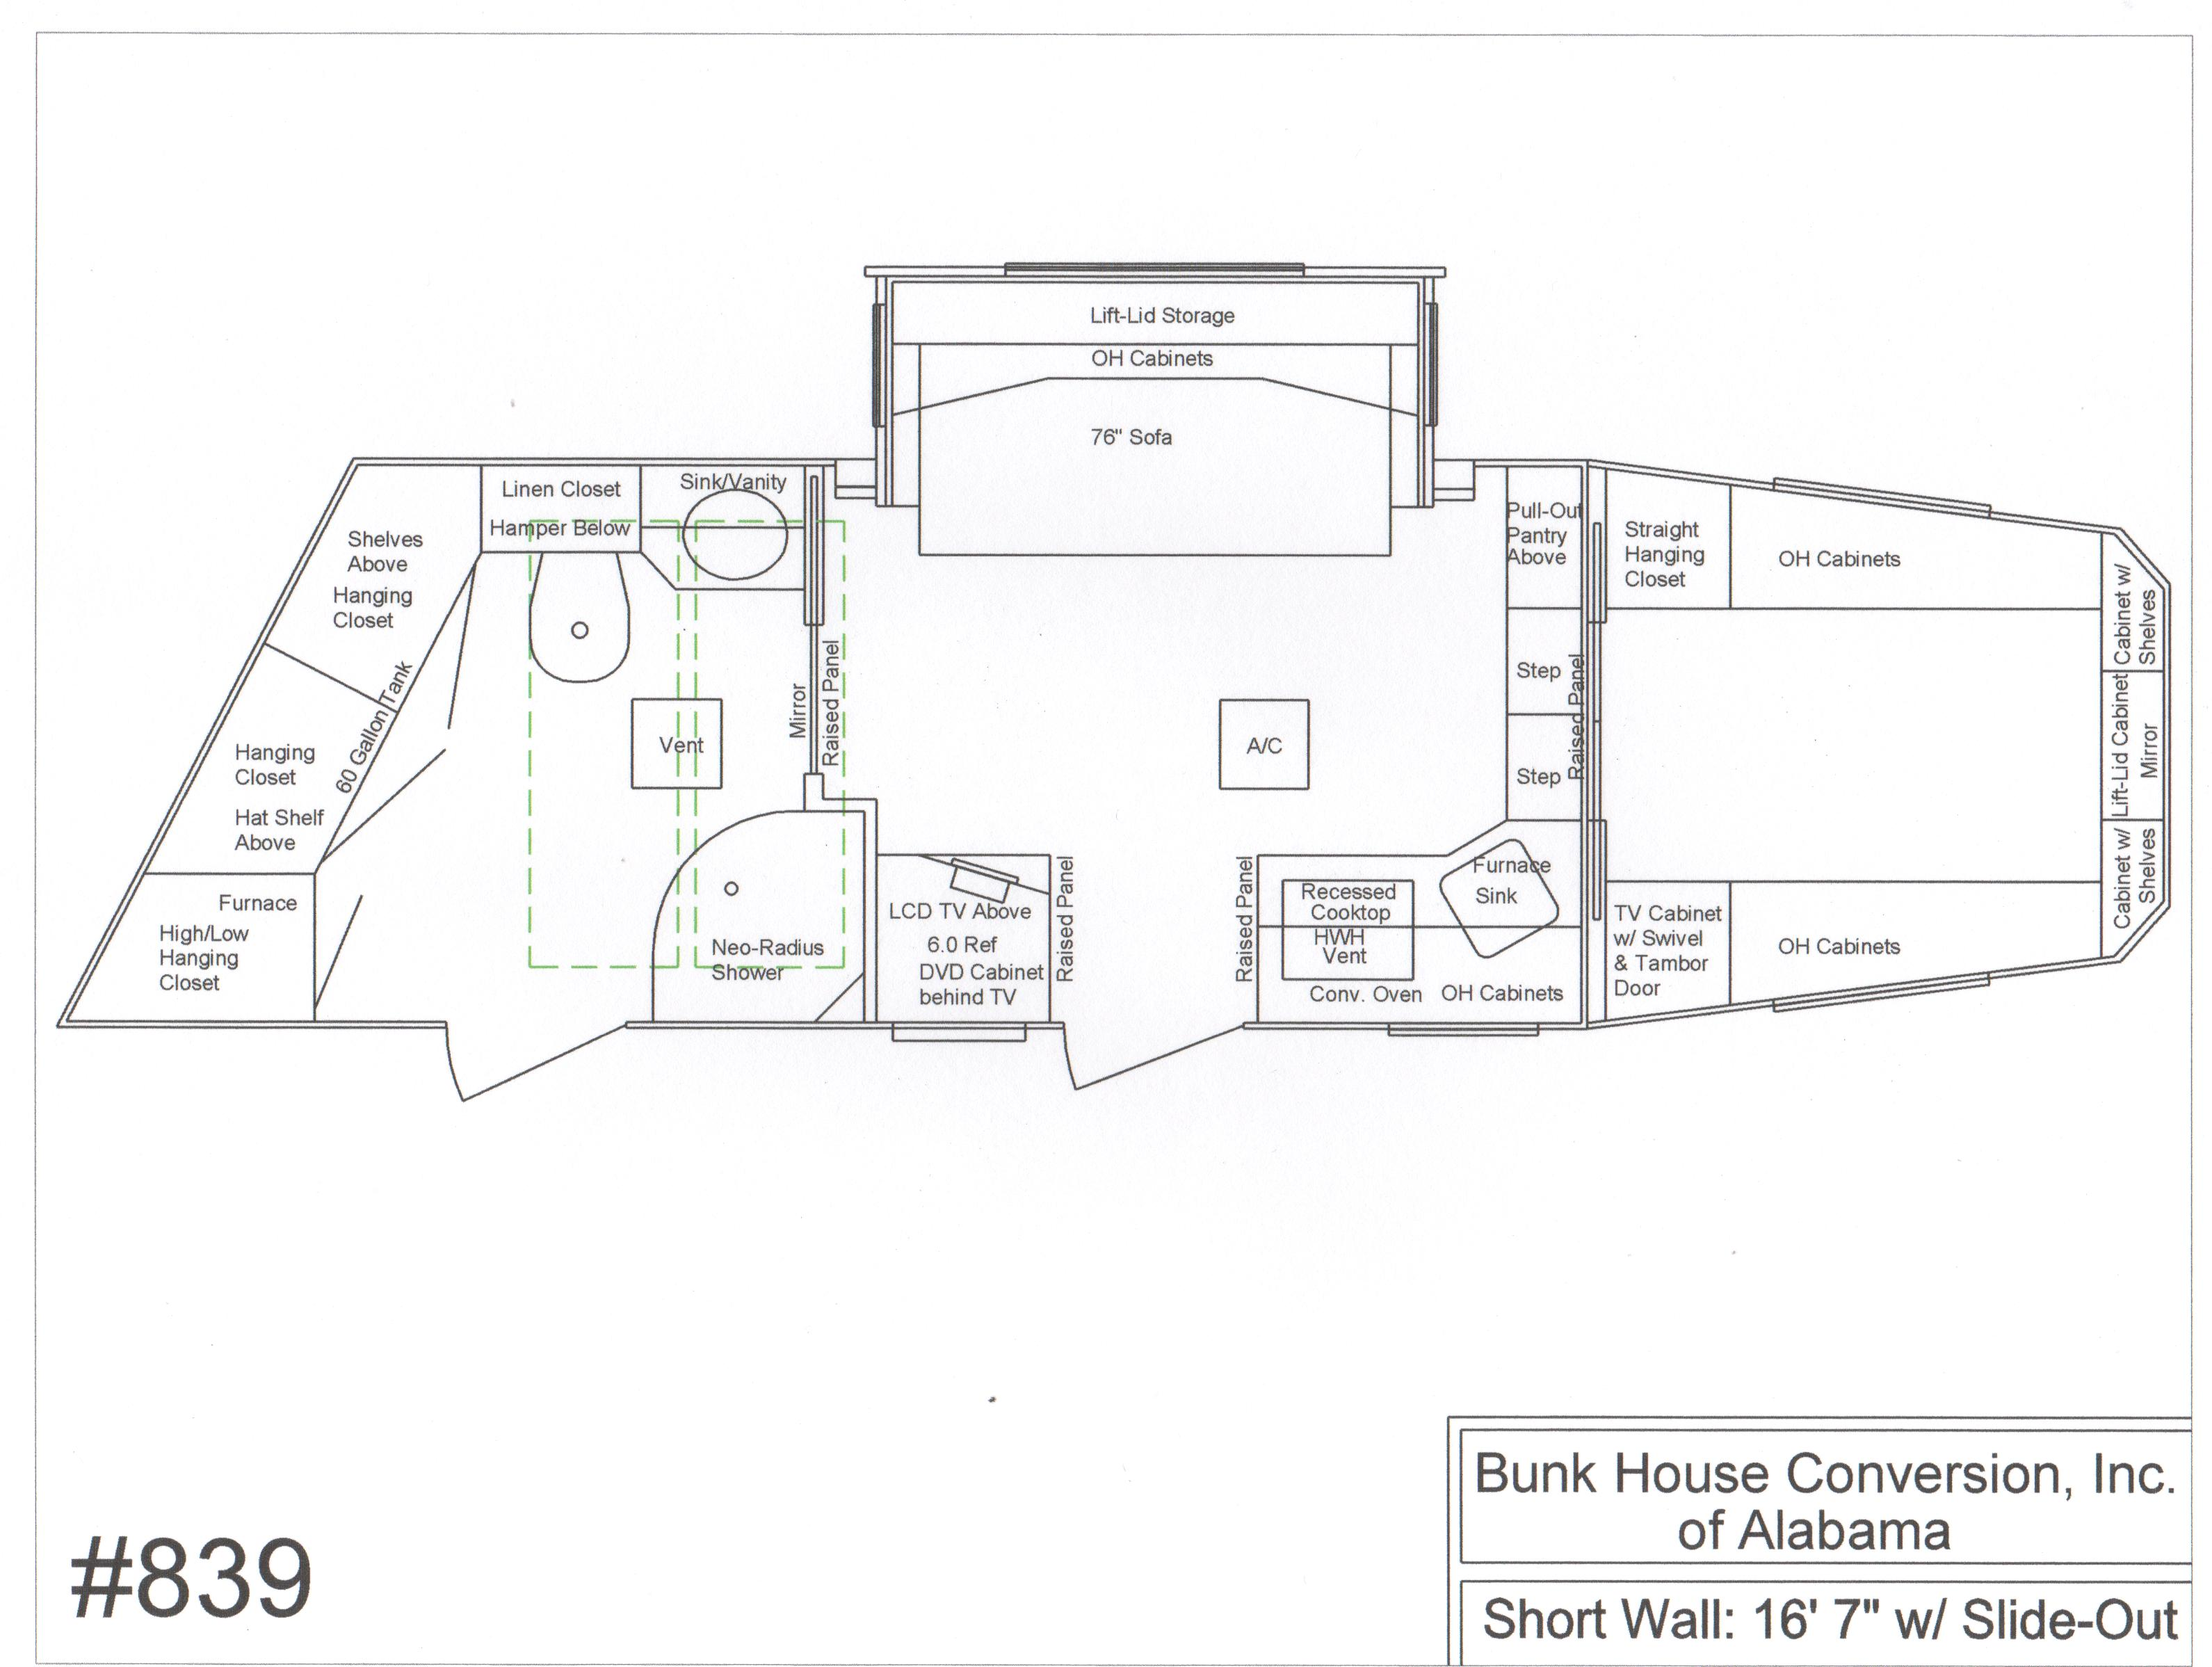 Congress Floorplans By Bunkhouse Conversion Of Alabama: bunkhouse floor plans